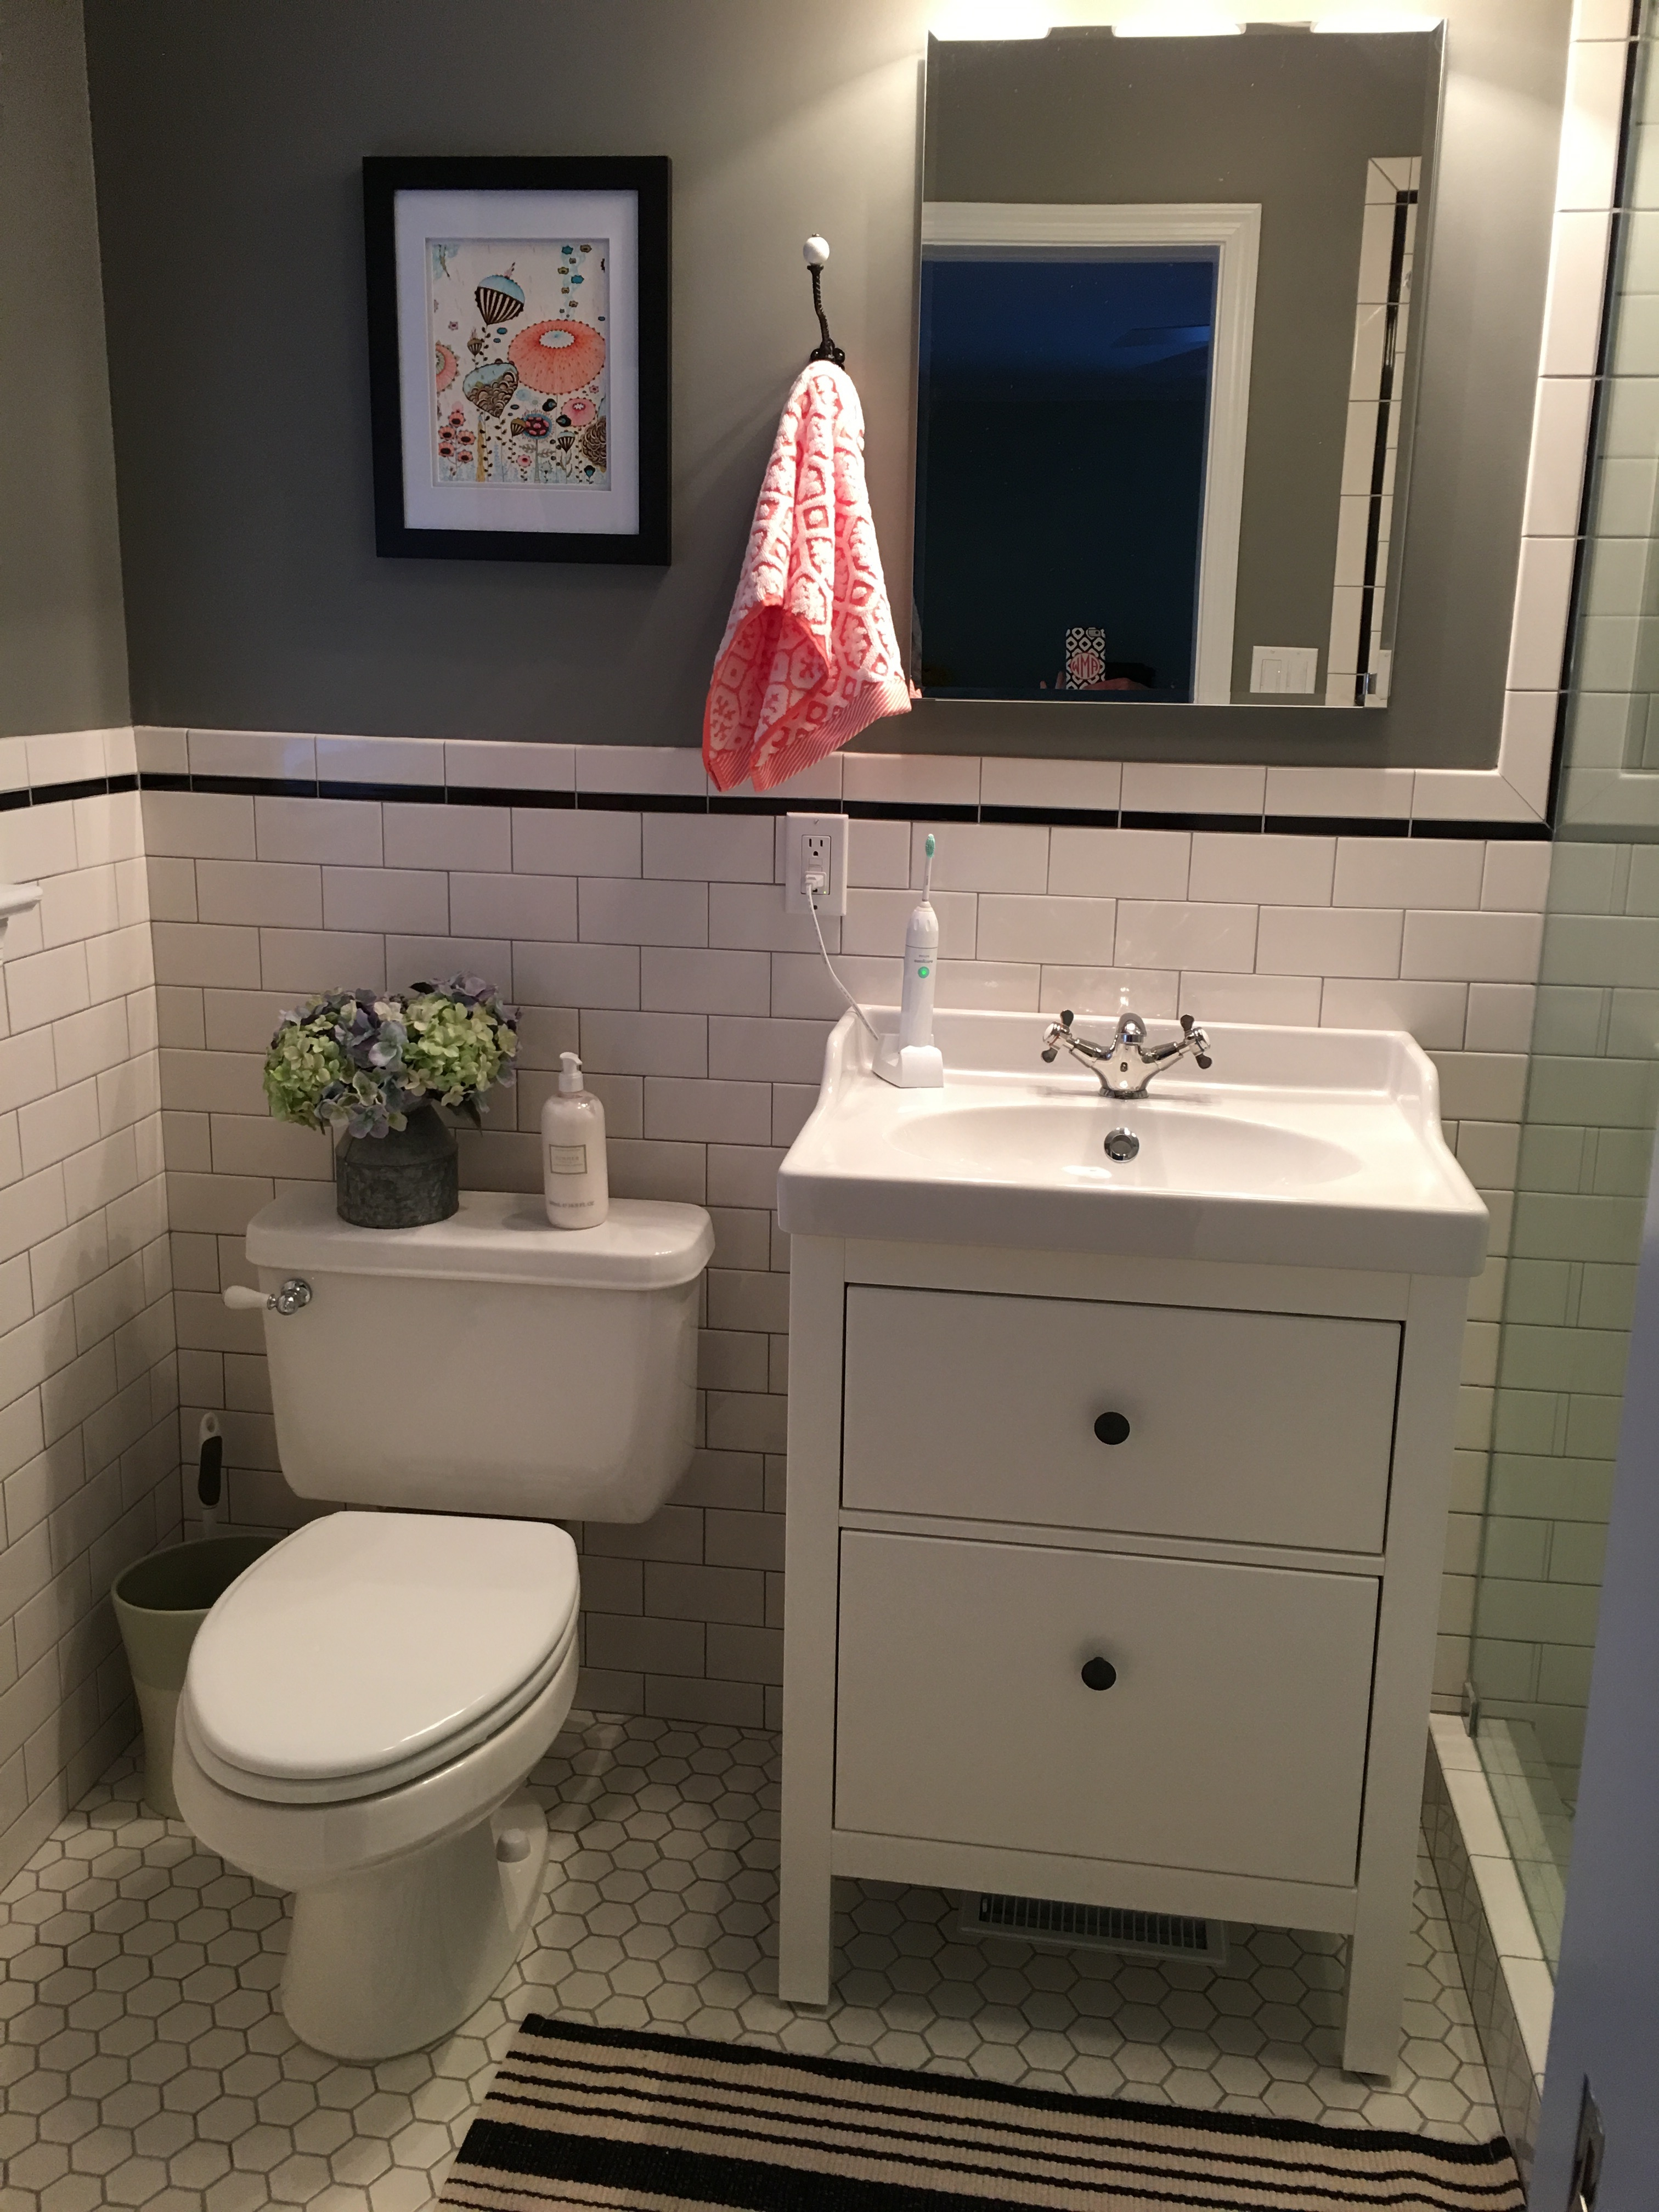 Permalink to Ikea Bathroom Sinks For Small Spaces